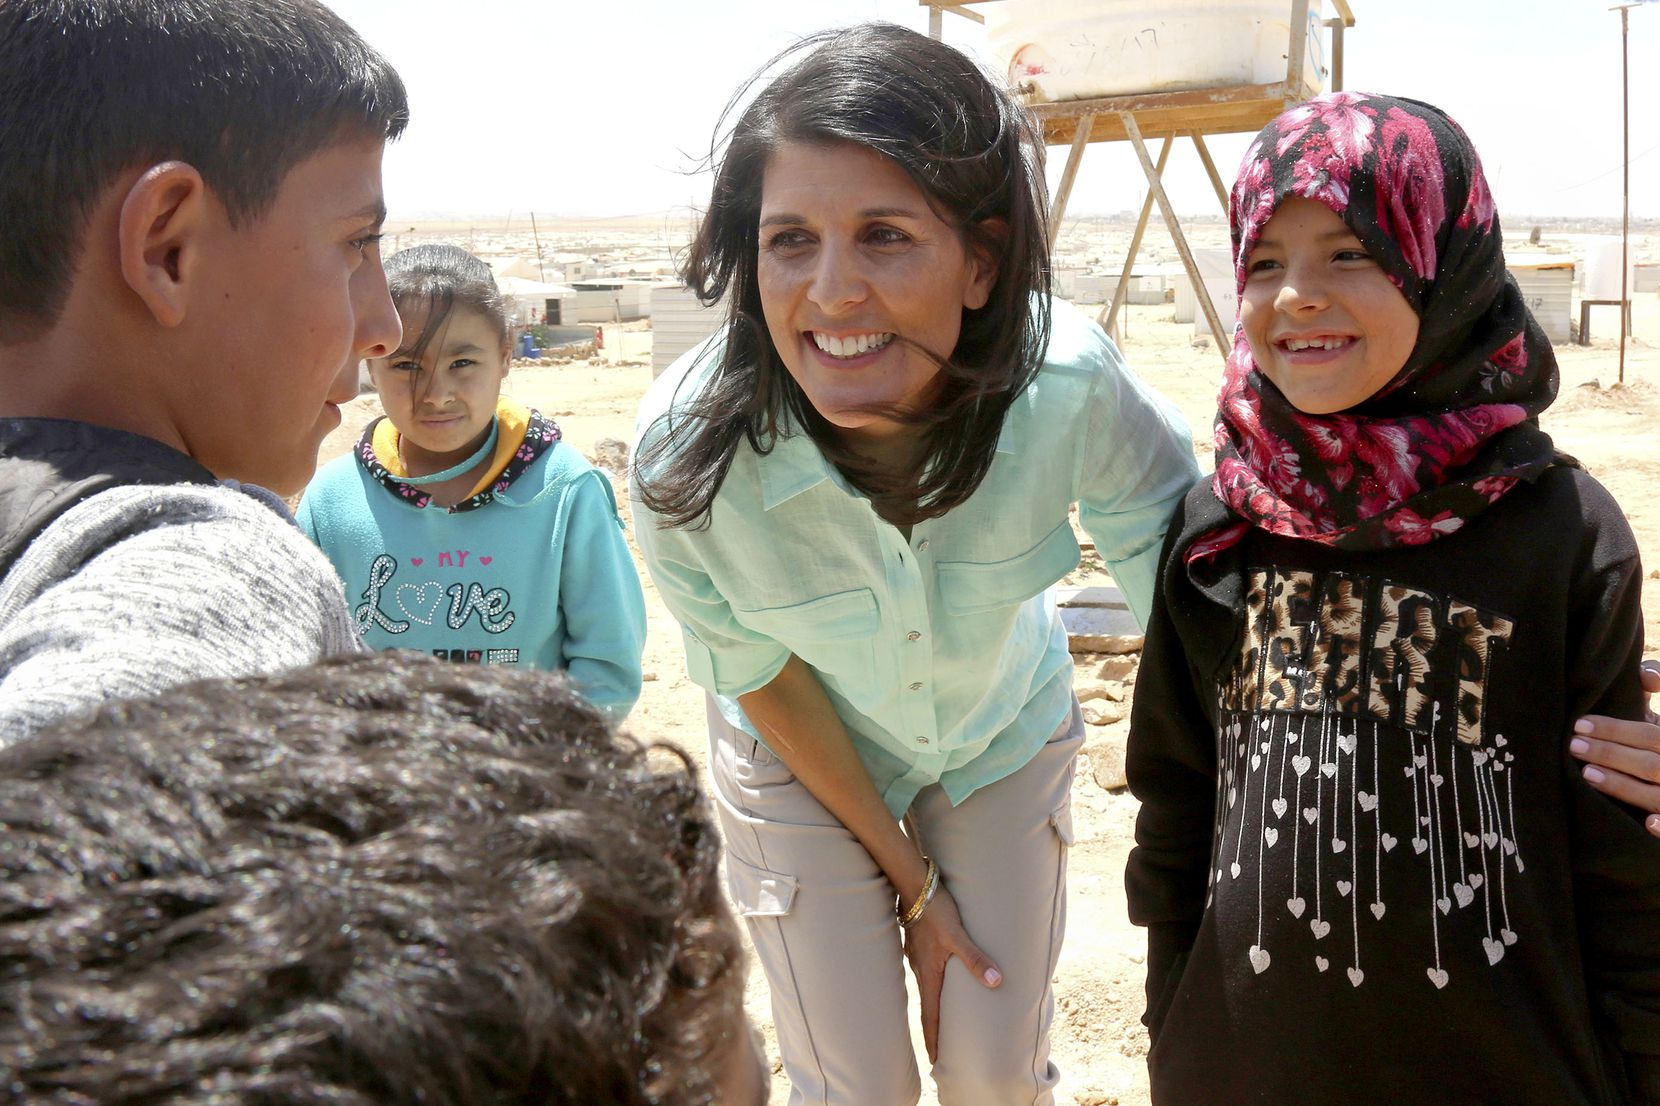 """U.S. Ambassador to the United Nations Nikki Haley, speaks with Syrian refugee children, during a visit to the Zaatari Refugee Camp, Jordan, Sunday, May 21, 2017. Haley said the Trump administration wants to step up help for the millions of people displaced. Yet Nikki Haley's message is at odds with President Donald Trump's """"America First"""" agenda, his planned budget cuts and his hardline position on admitting refugees."""